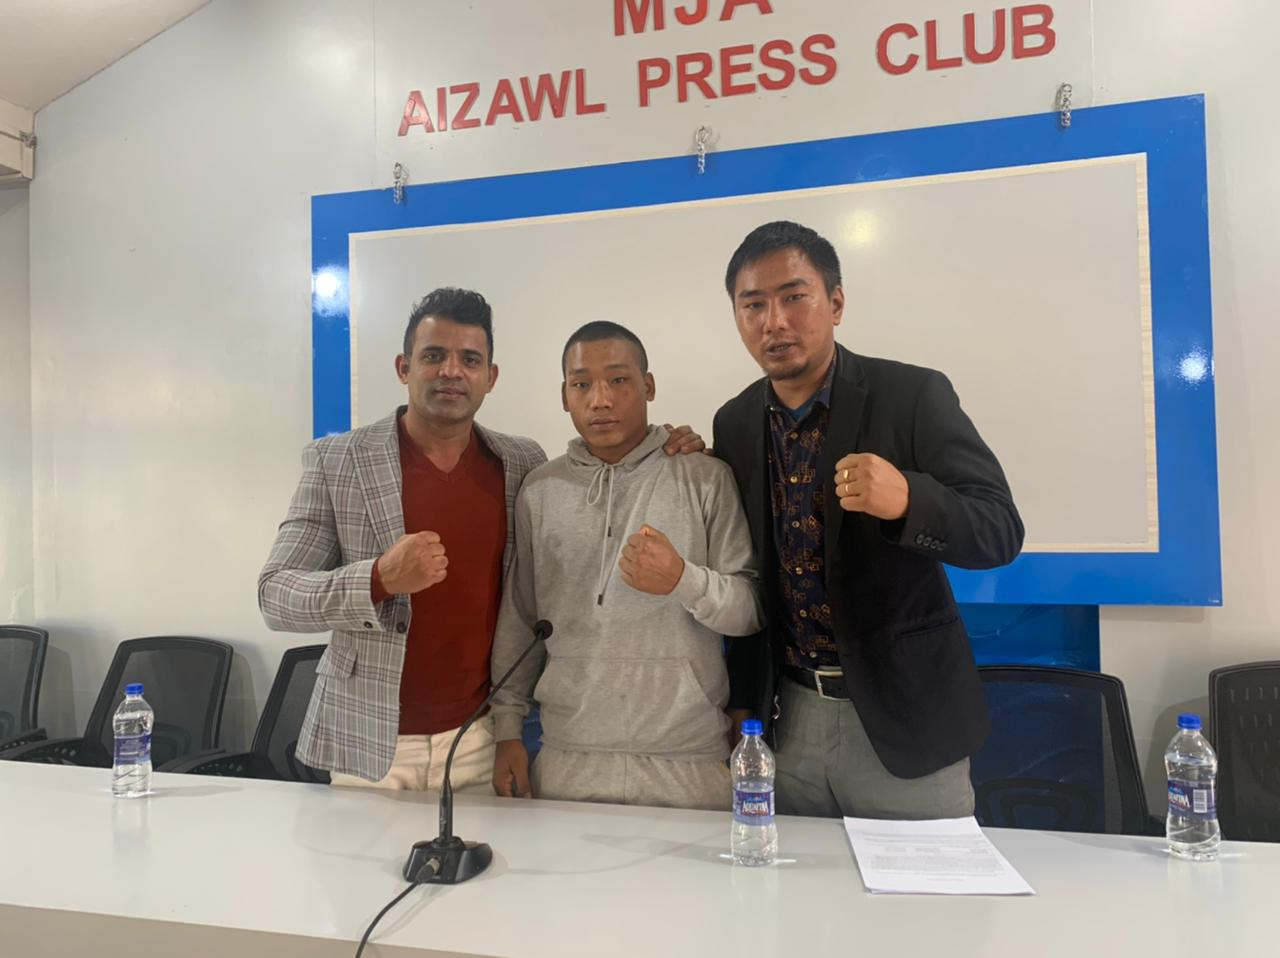 Boxing promoter Mujtaba Kamal wants to find the next world champion from India - Mujtaba Kamal